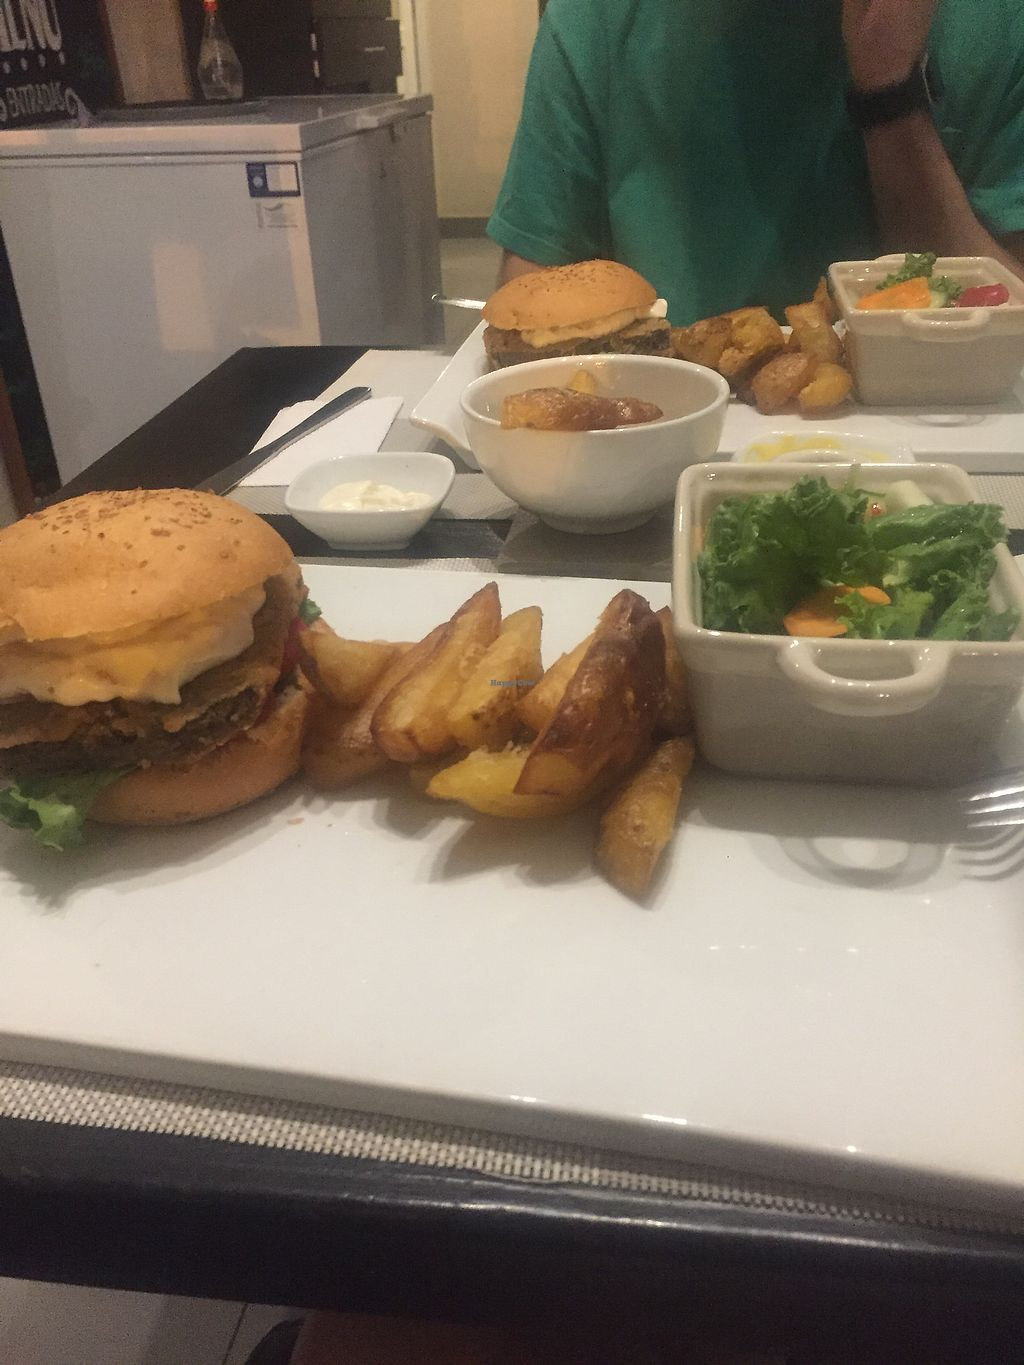 """Photo of Seitan Urban Bistro  by <a href=""""/members/profile/amndaxxxx"""">amndaxxxx</a> <br/>Very satisfying burger  <br/> January 24, 2018  - <a href='/contact/abuse/image/70536/350297'>Report</a>"""